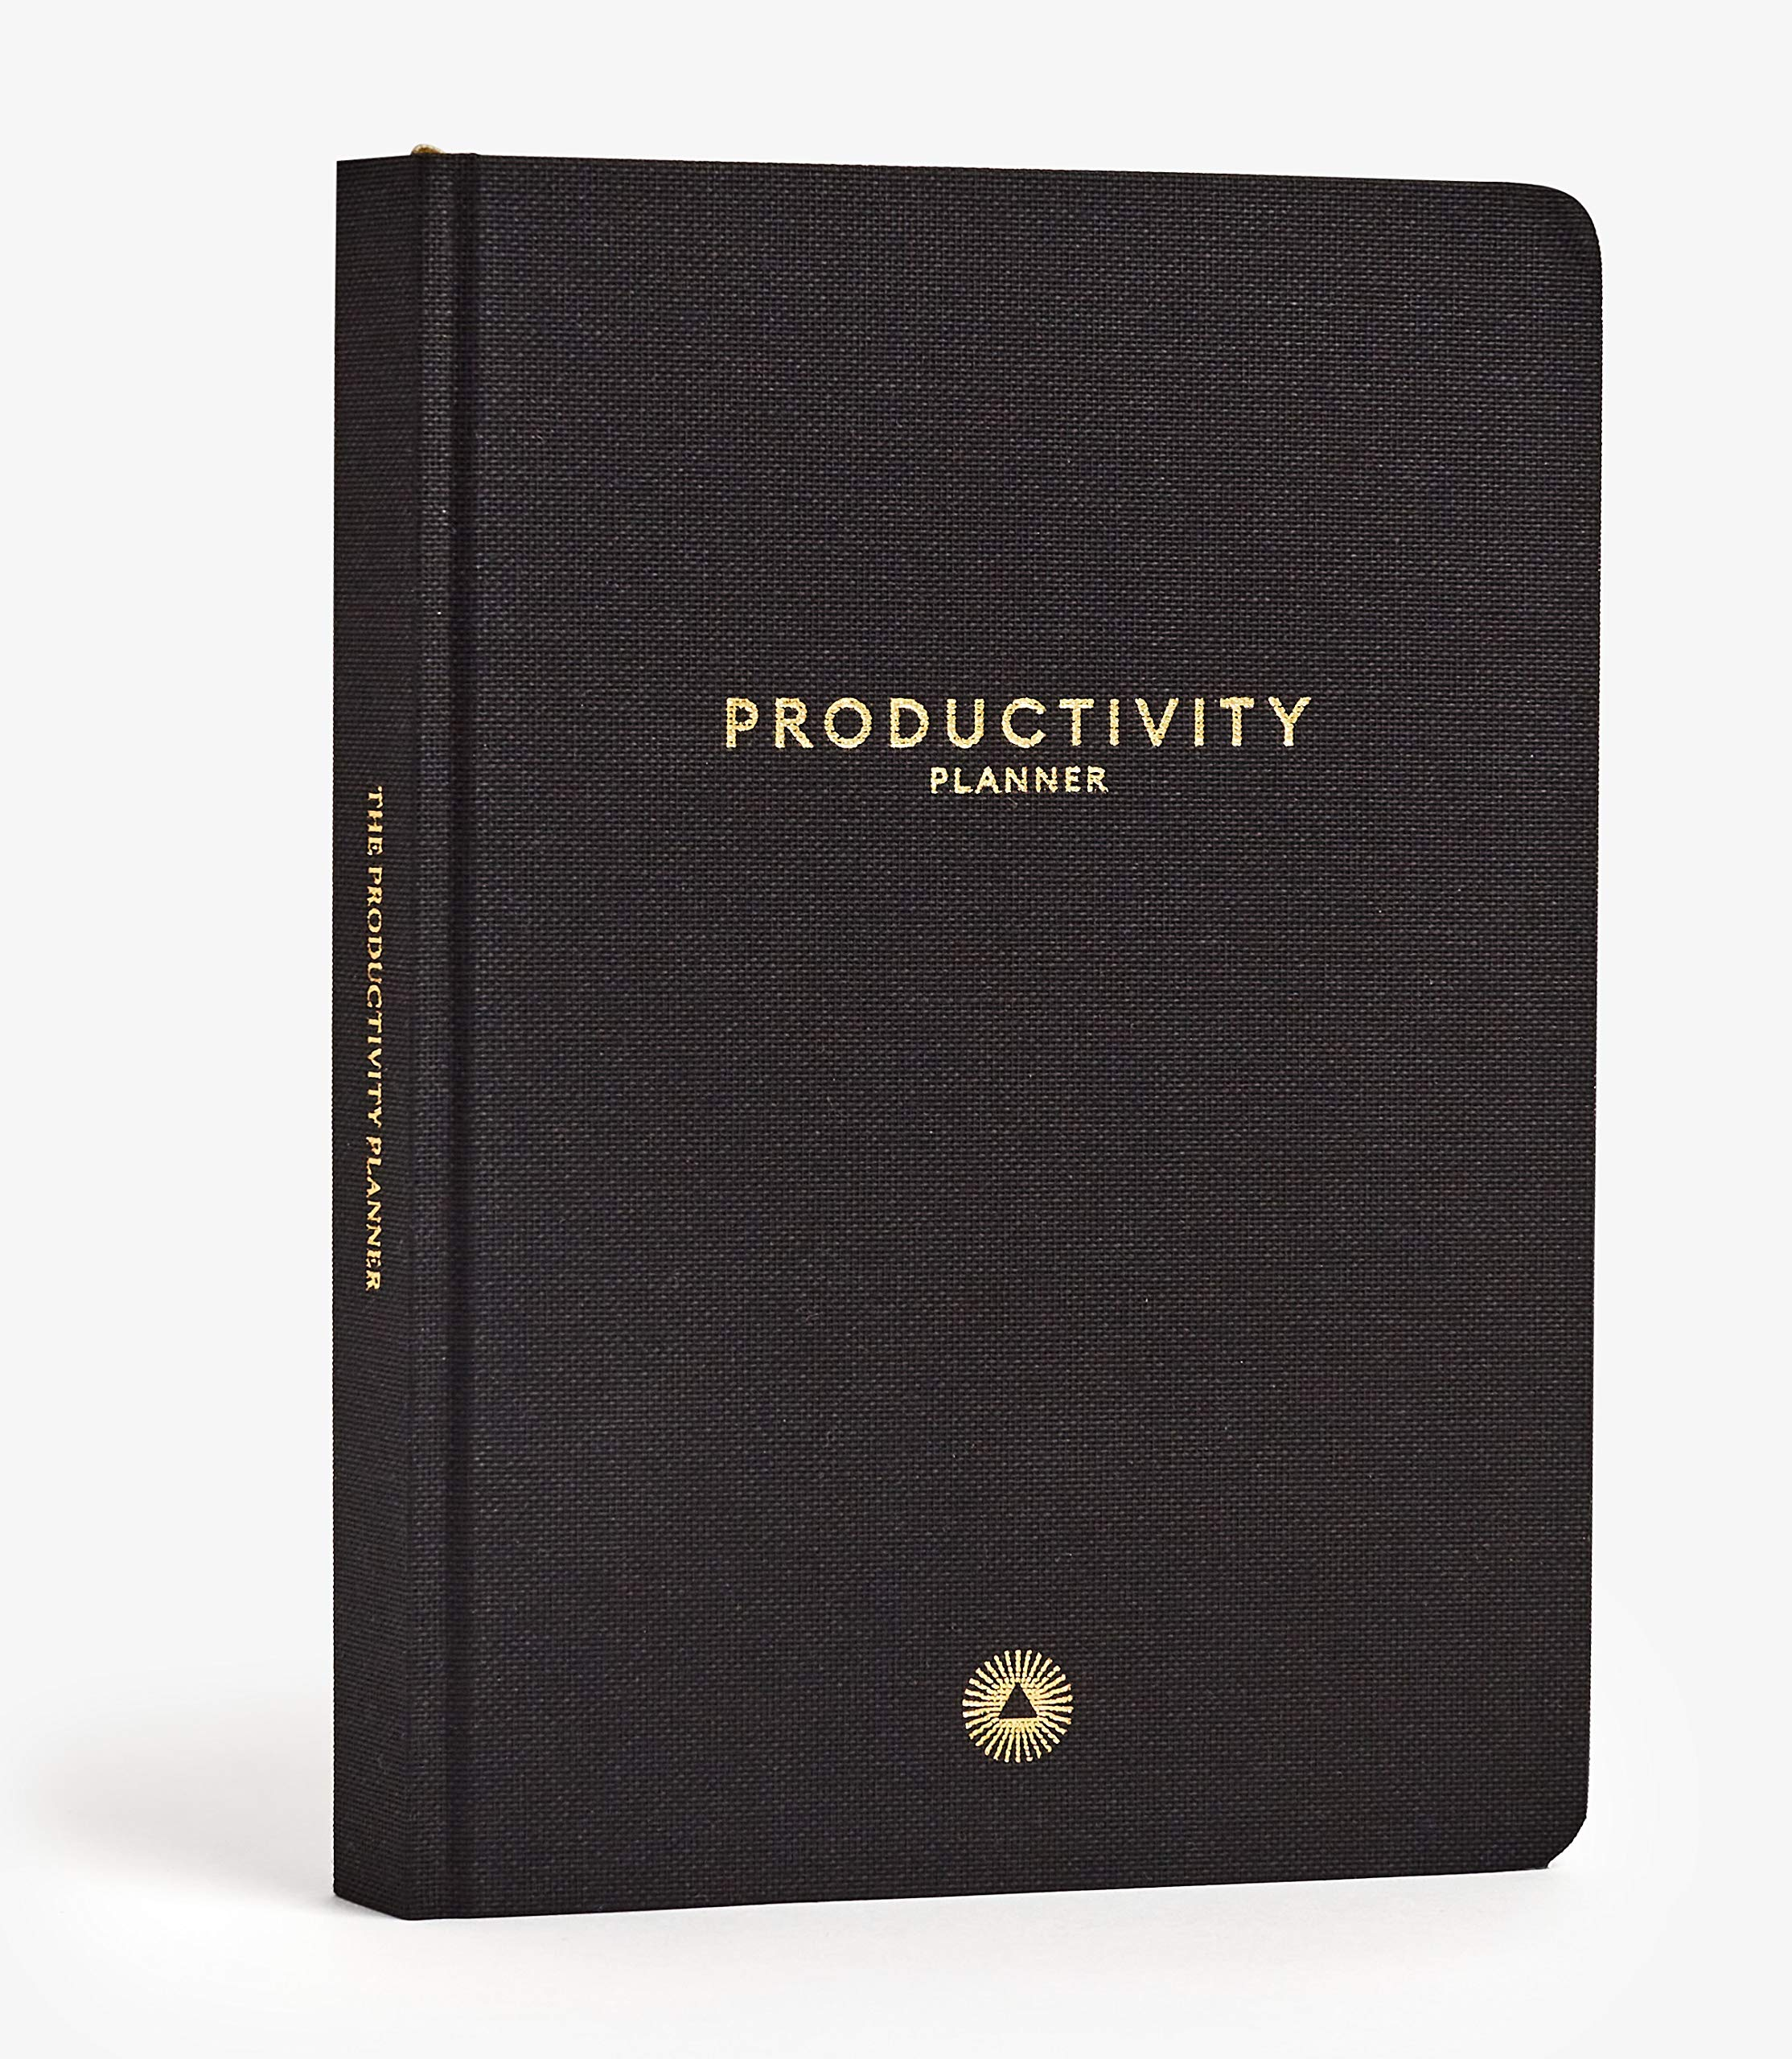 Productivity Planner :Plan Out Your Daily & Long Term Goals and Become More Productive this Year | Simple Daily Format - Increase Self Awareness and Productivity with Researched Productivity Principles